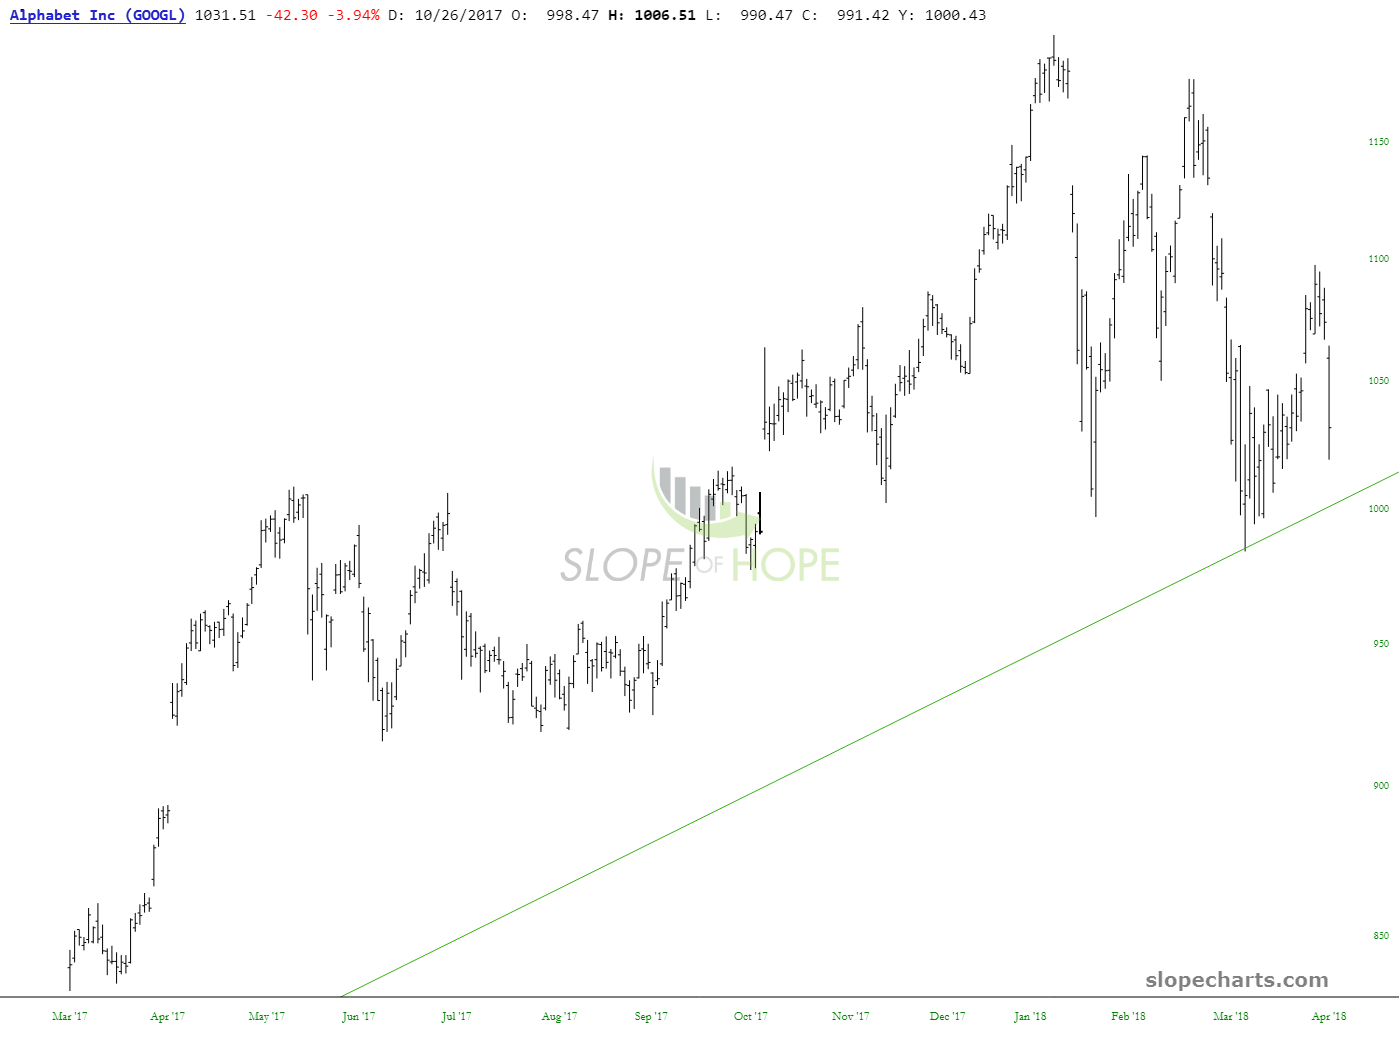 slopechart_GOOGL